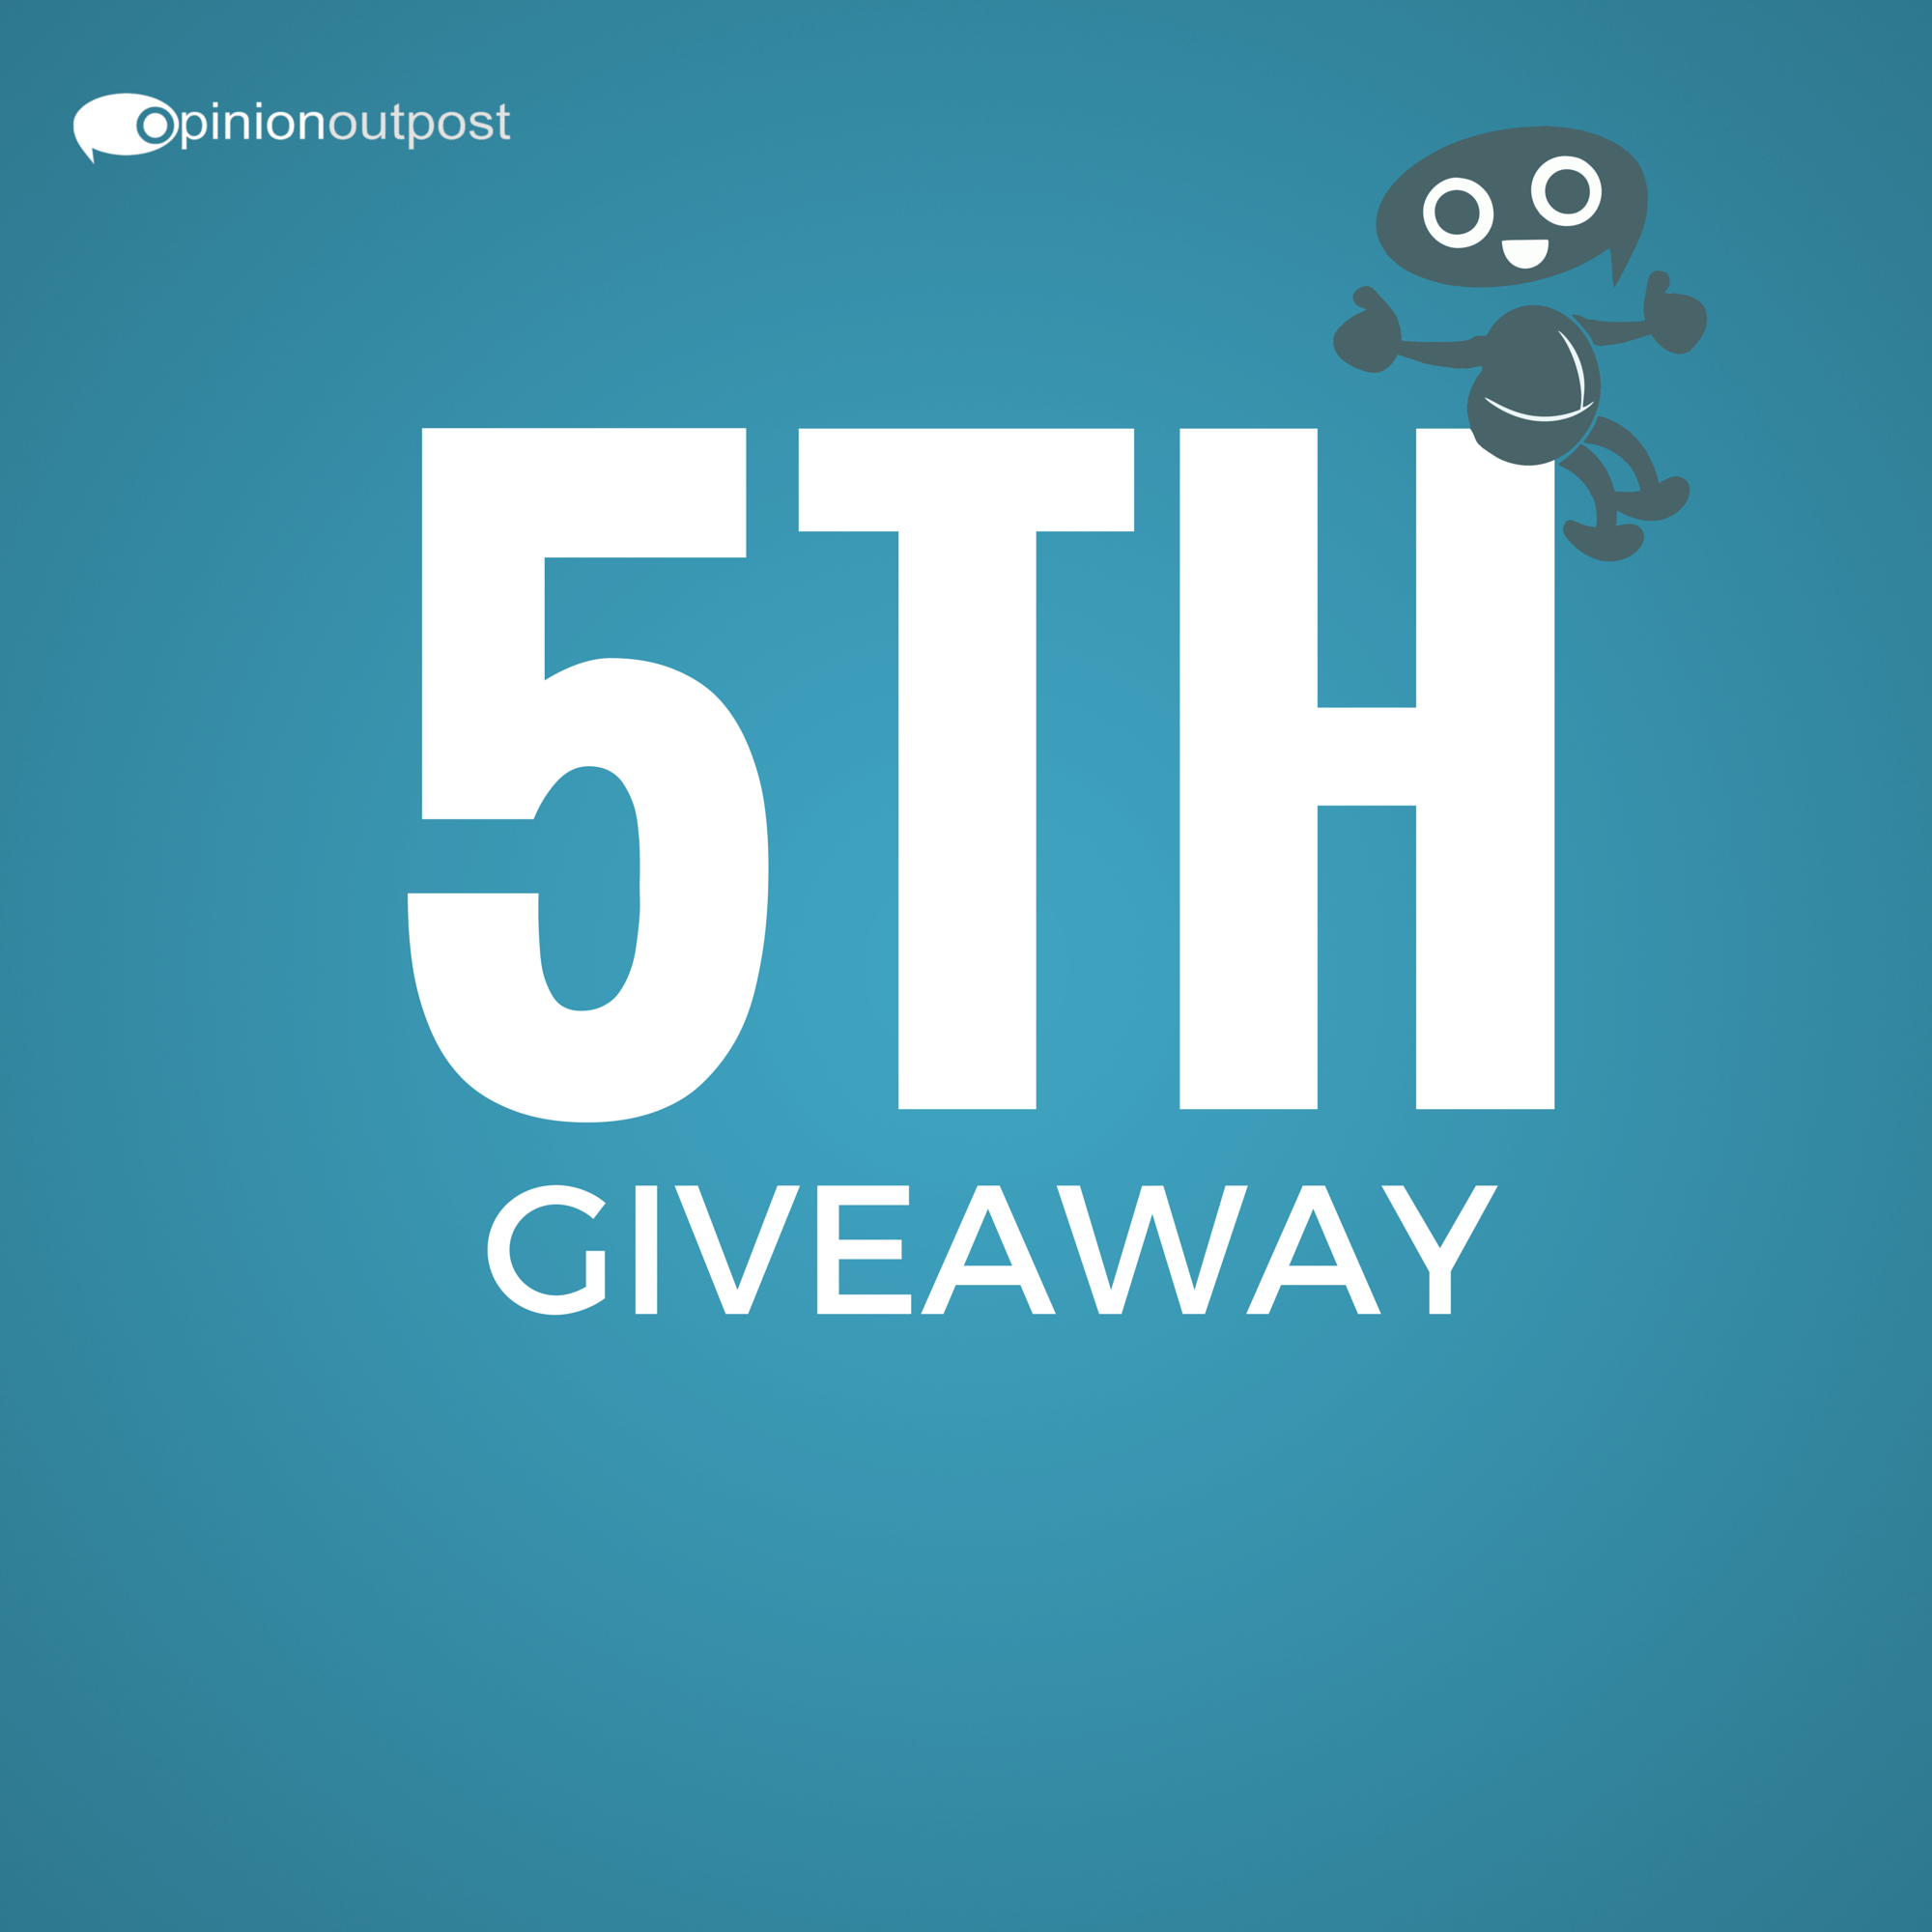 Last one this week is EASY! Please check our Facebook page. You have 11:59 pm EST tonight to enter. Winner will be announced Monday. For more information click on the image.Thanks for participating in the first week of the Opinion Outpost #OODollarADayGiveaway! Happy Weekend!